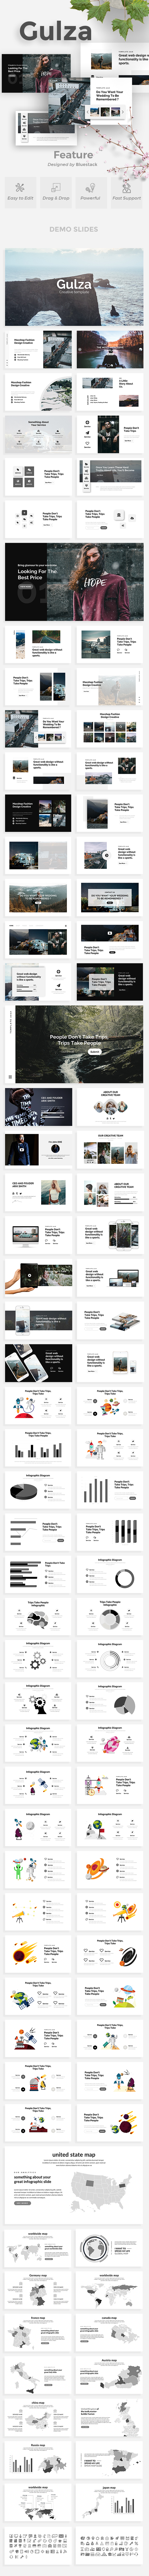 Gulza Creative Keynote Template - Creative Keynote Templates